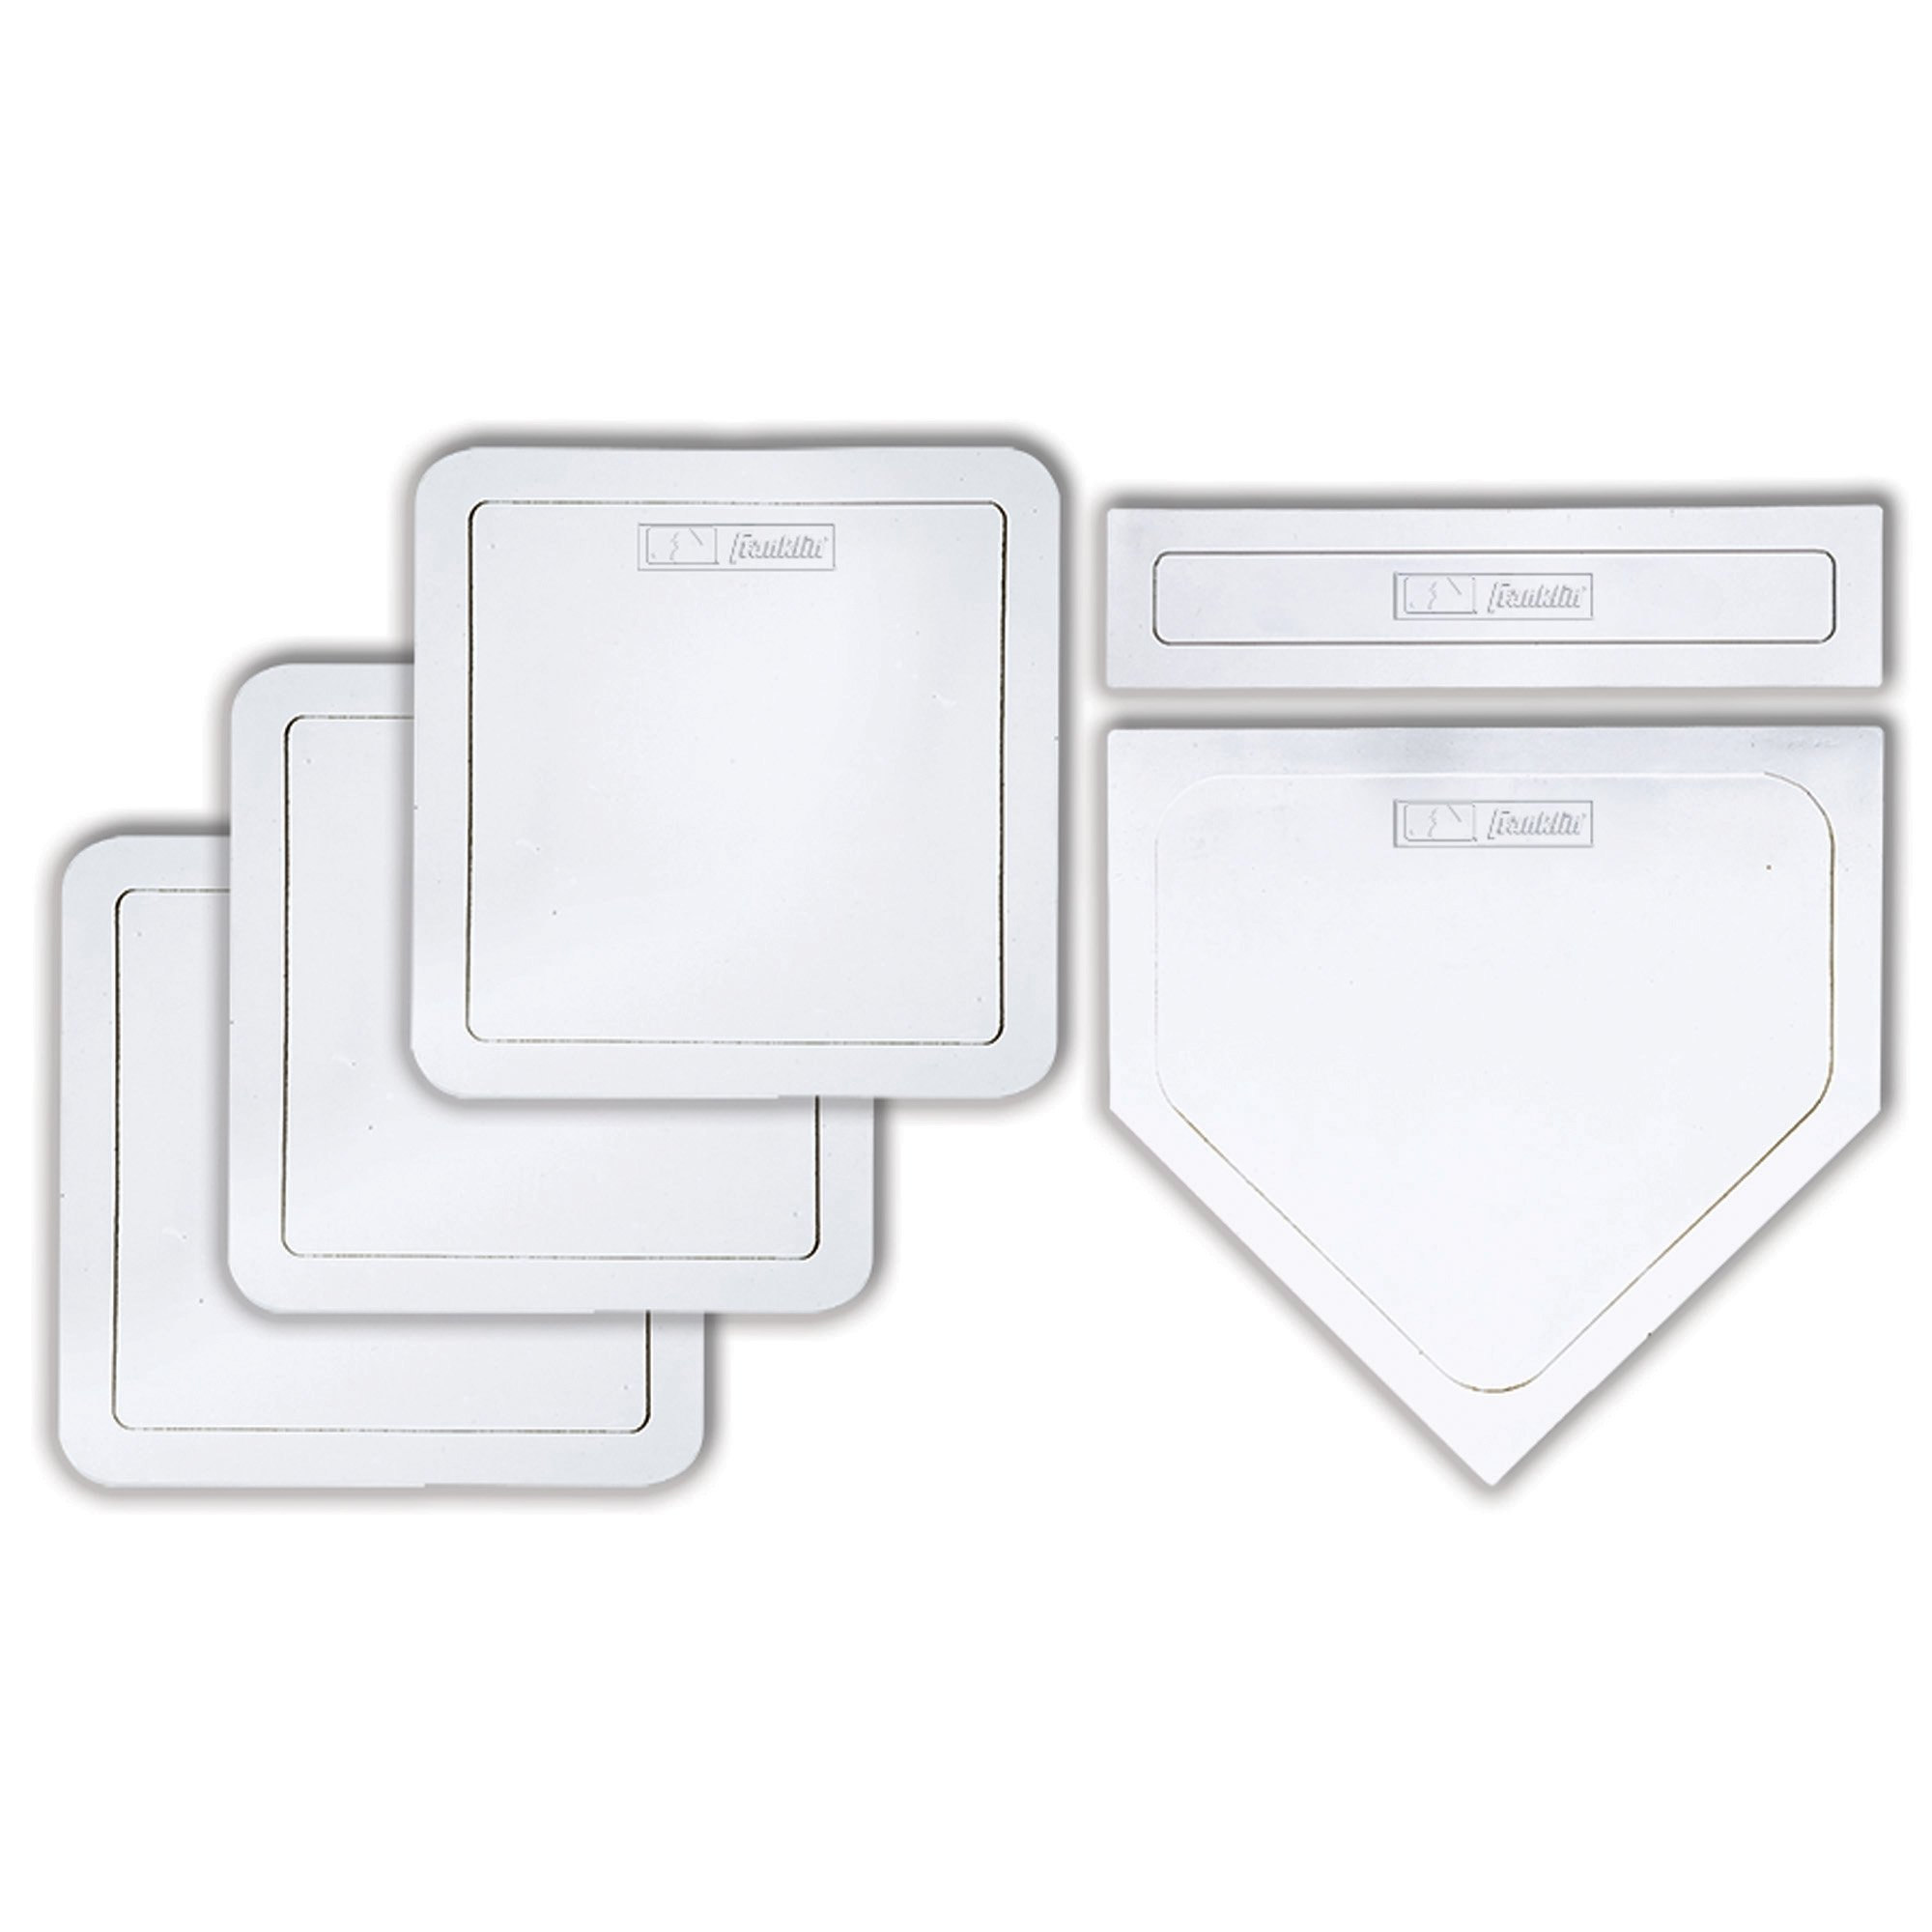 Franklin Sports Thrown Down Baseball Bases with Home Plate and Pitcher's Rubber - Rubber Base Set Perfect for Baseball, Teeball, and Kickball - Five Piece White by Franklin Sports